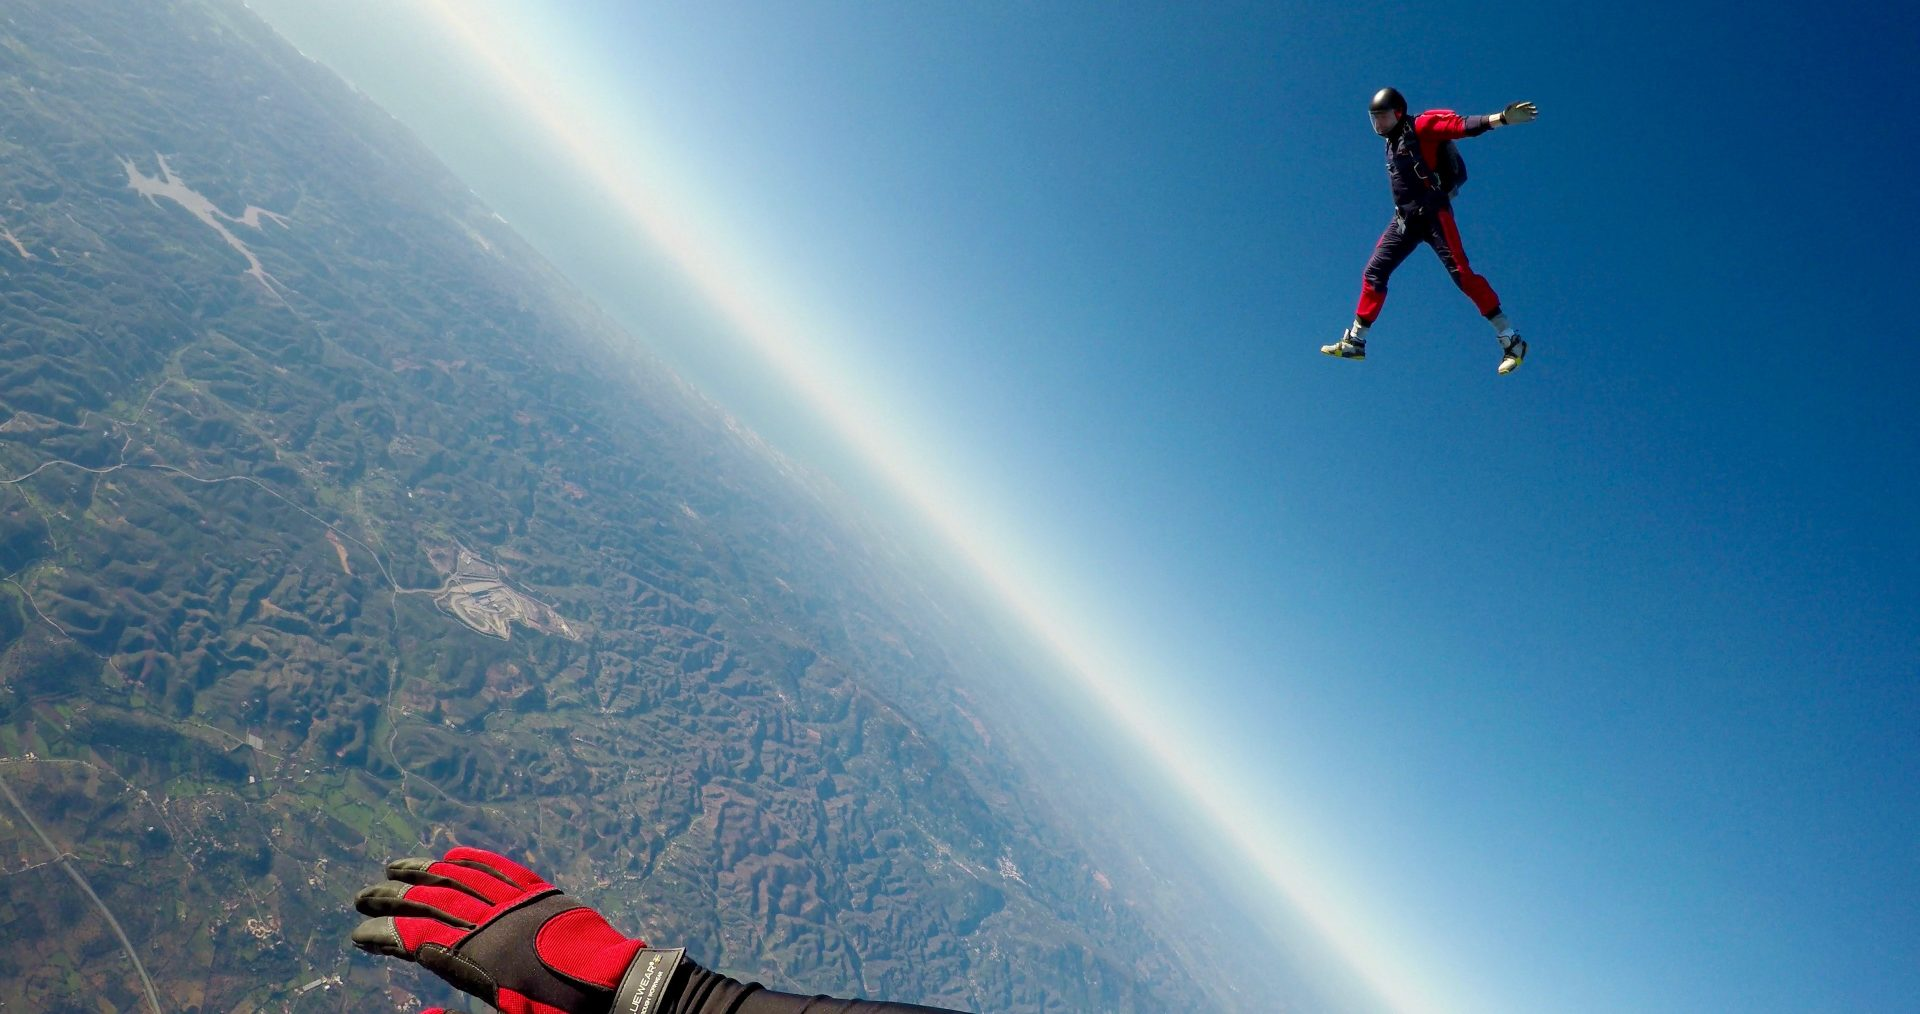 Man jumps out of plane in a skydive